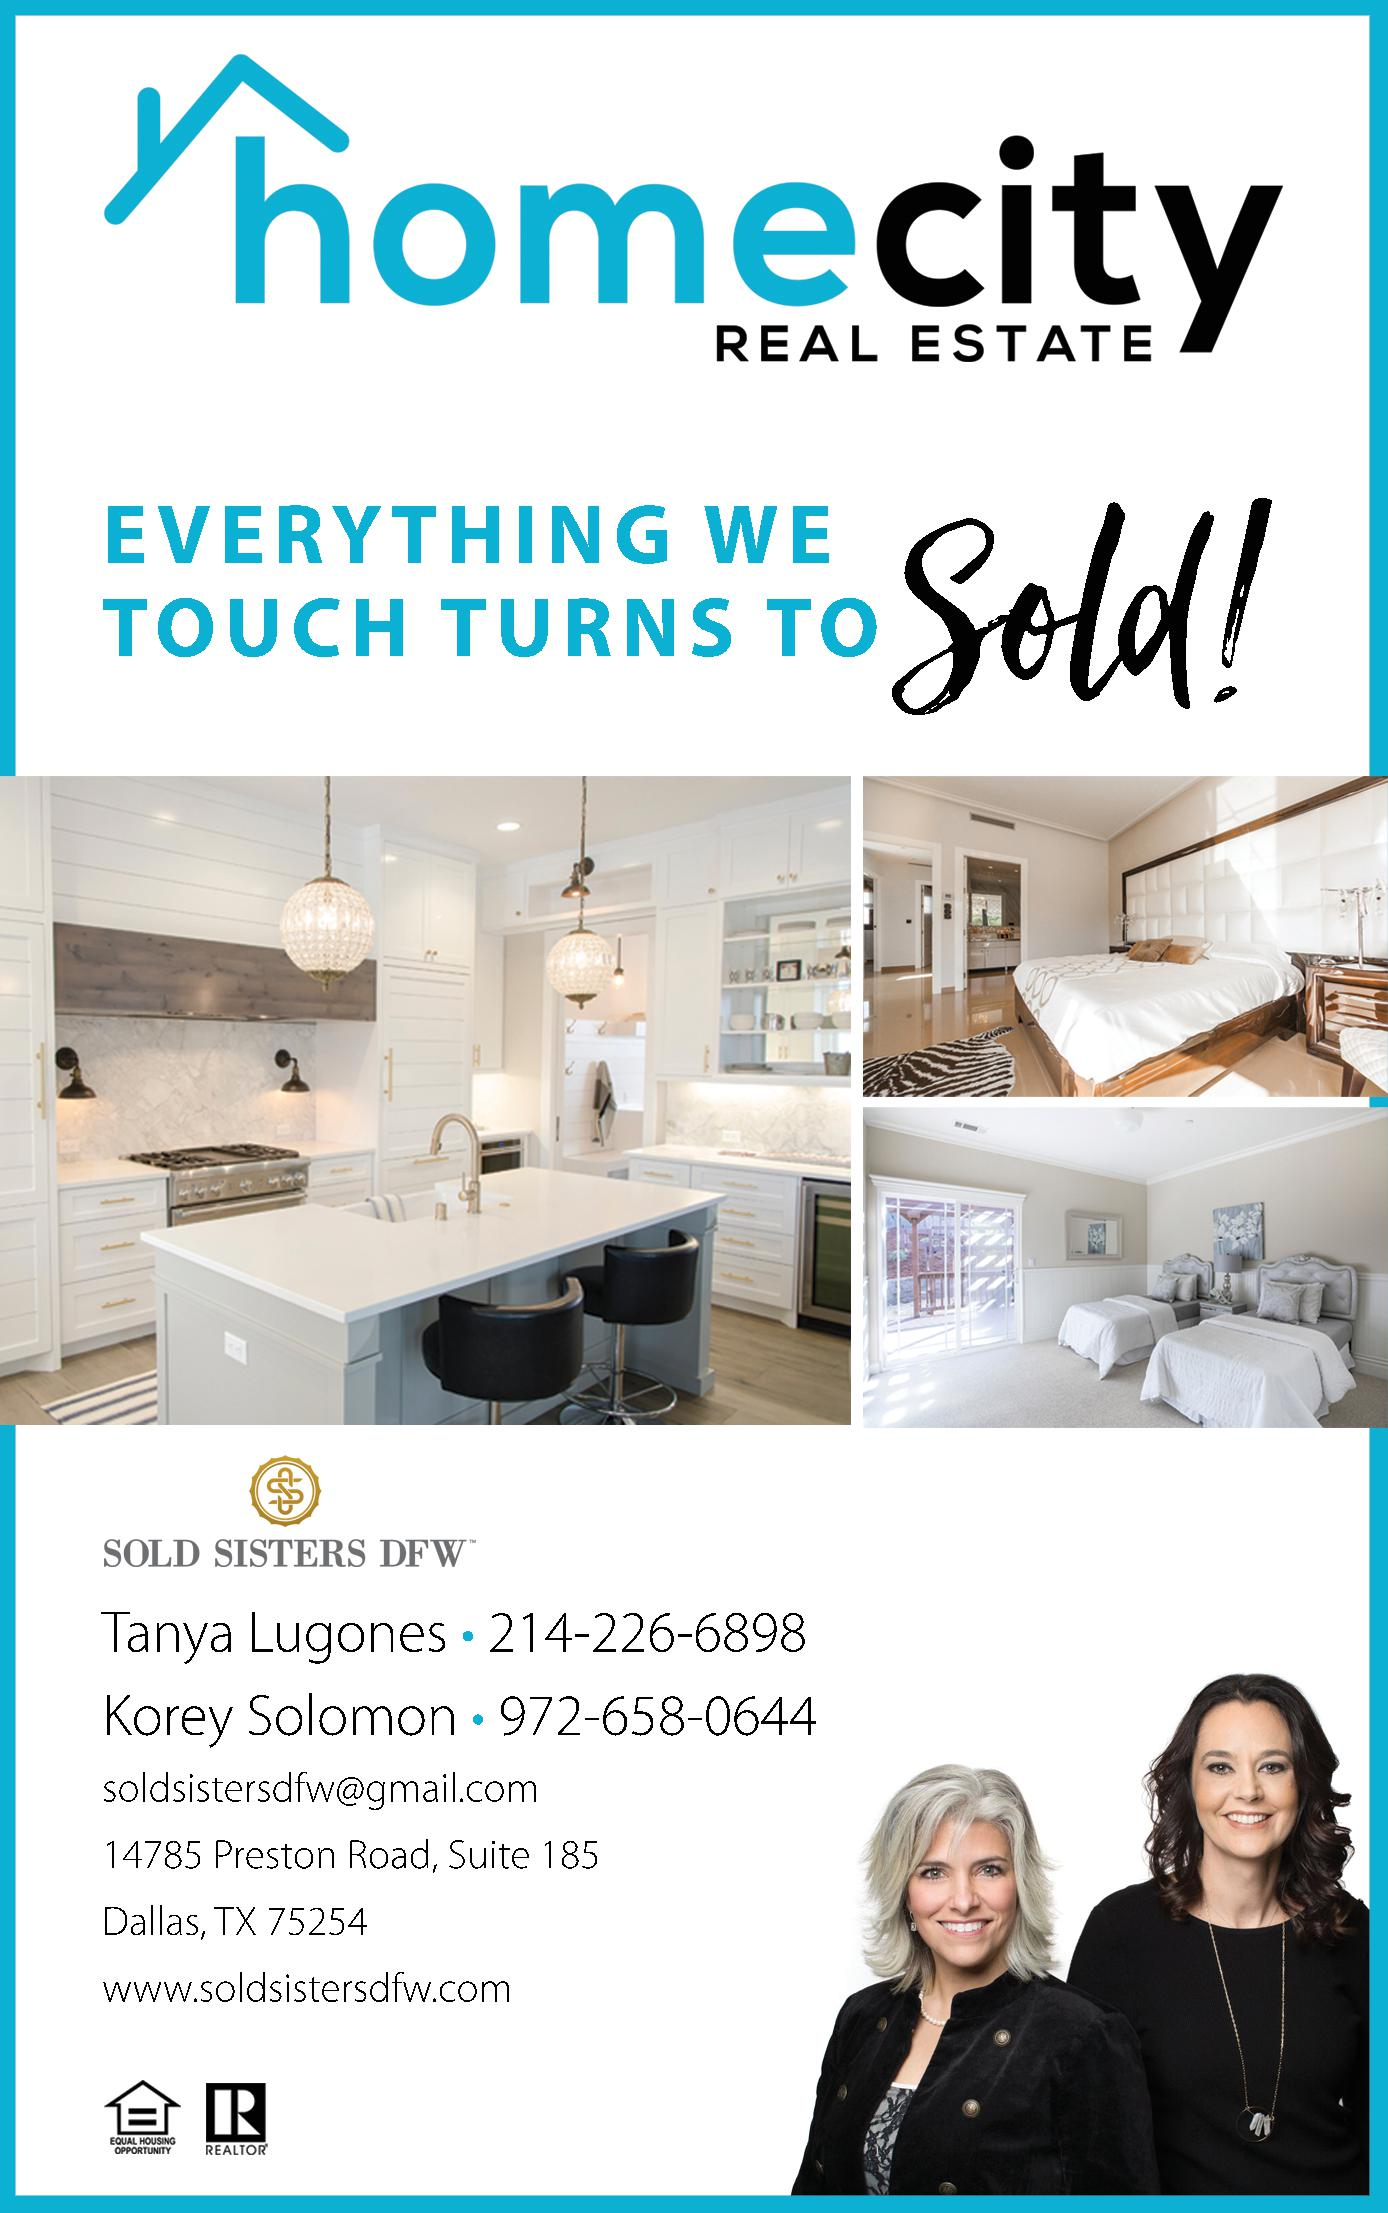 Sold Sisters DFW @ HomeCity Realestate